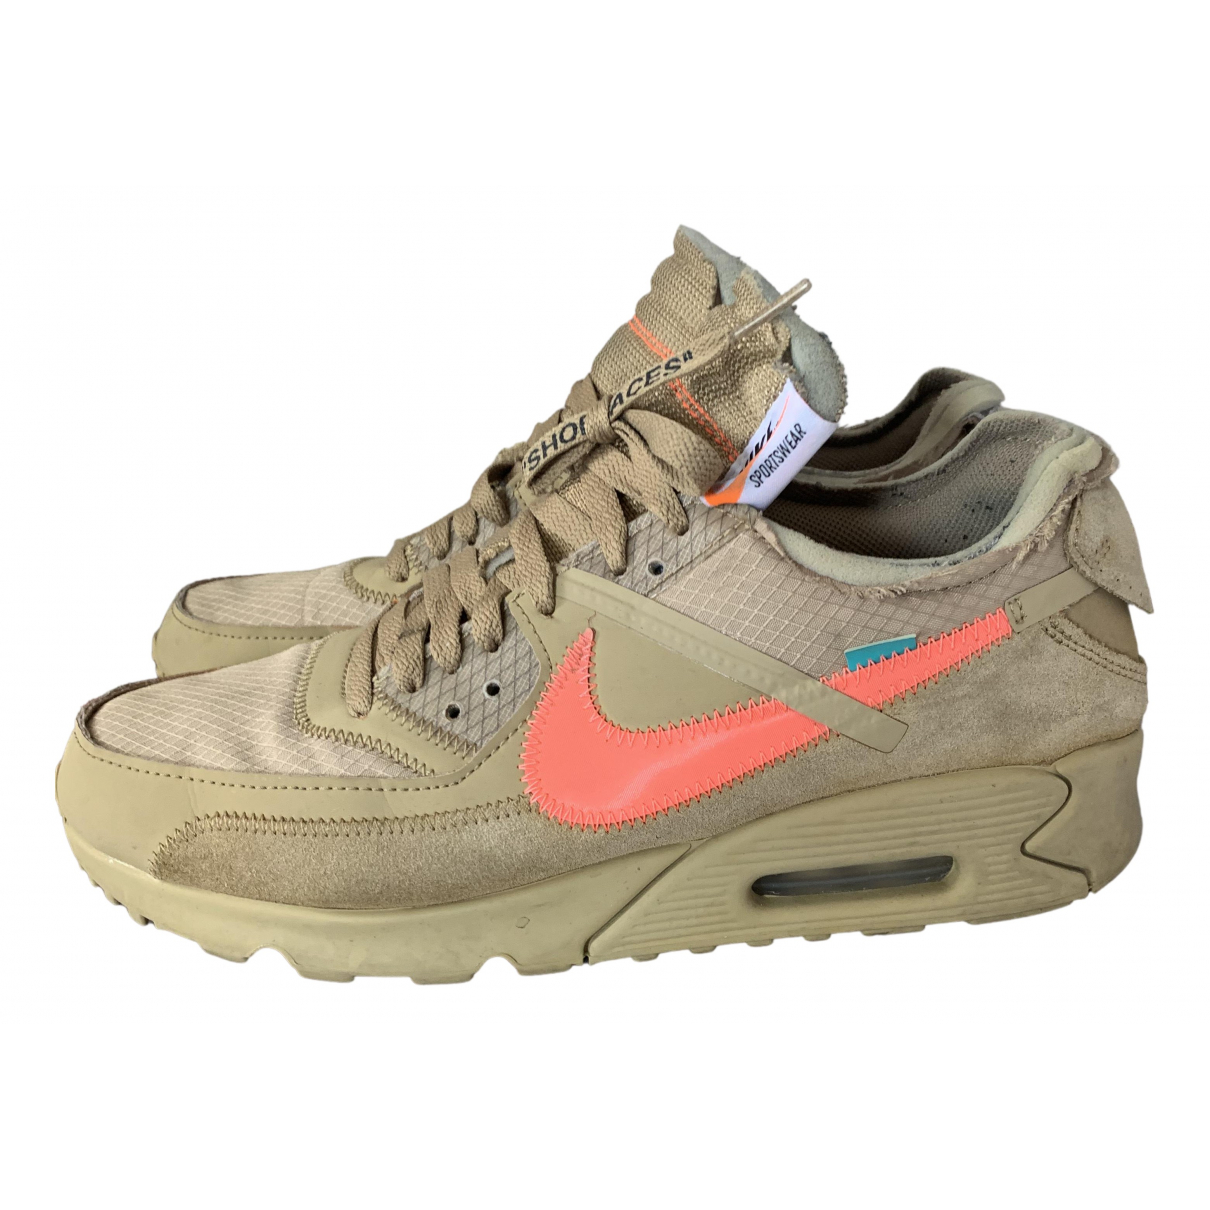 Nike X Off-white Air Max 90 Beige Suede Trainers for Men 9.5 UK